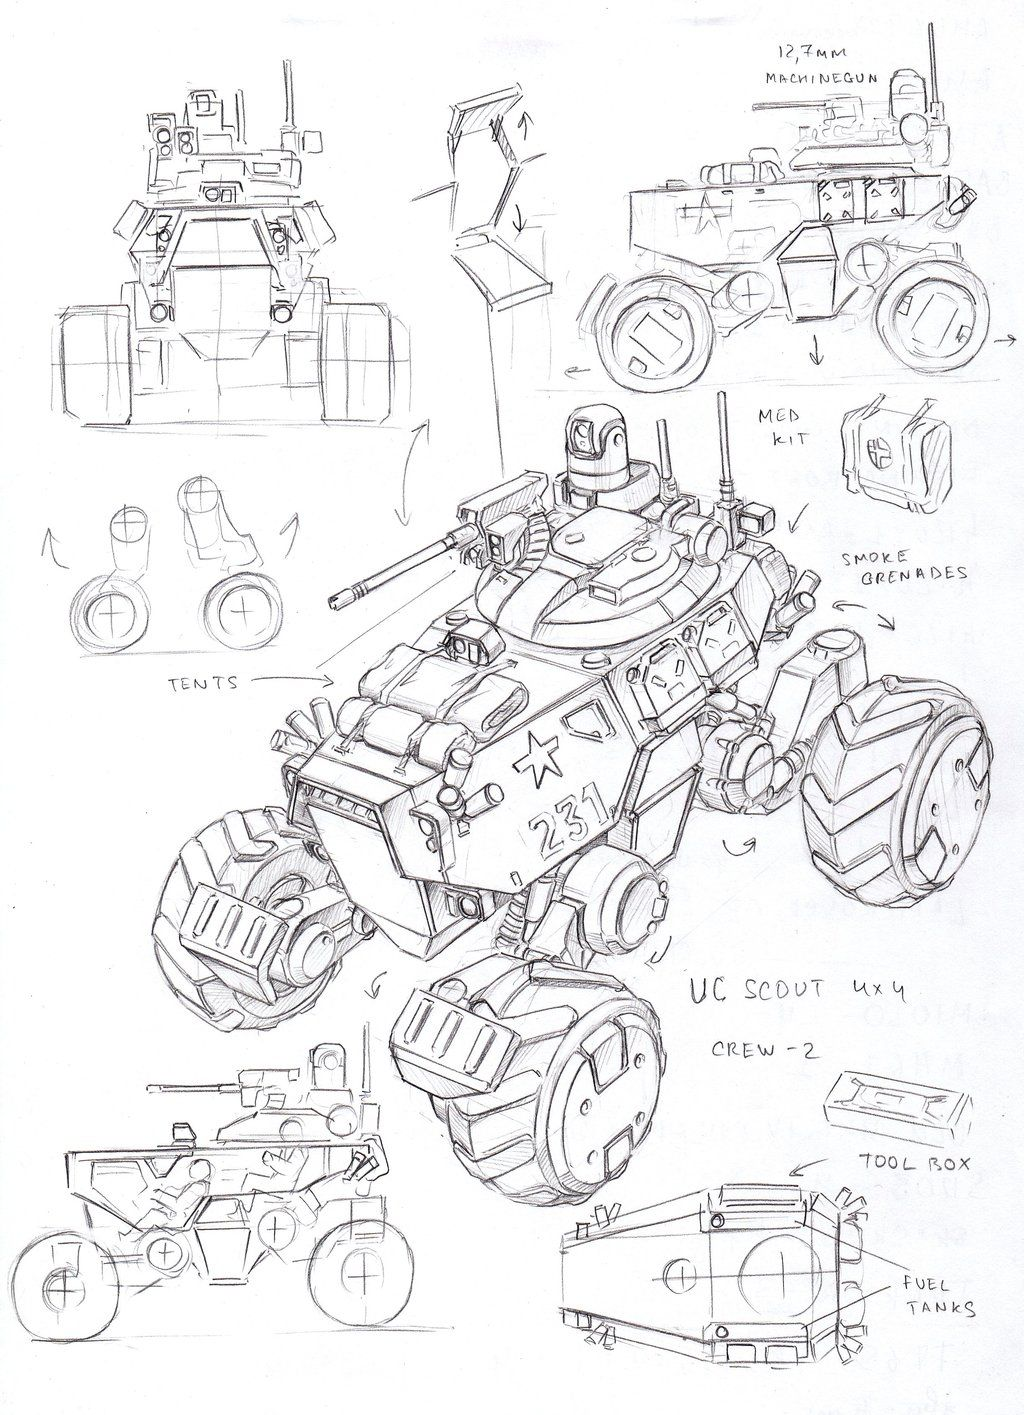 I Like This Raised Roverbuggy Look Uc Scout Vehicle By